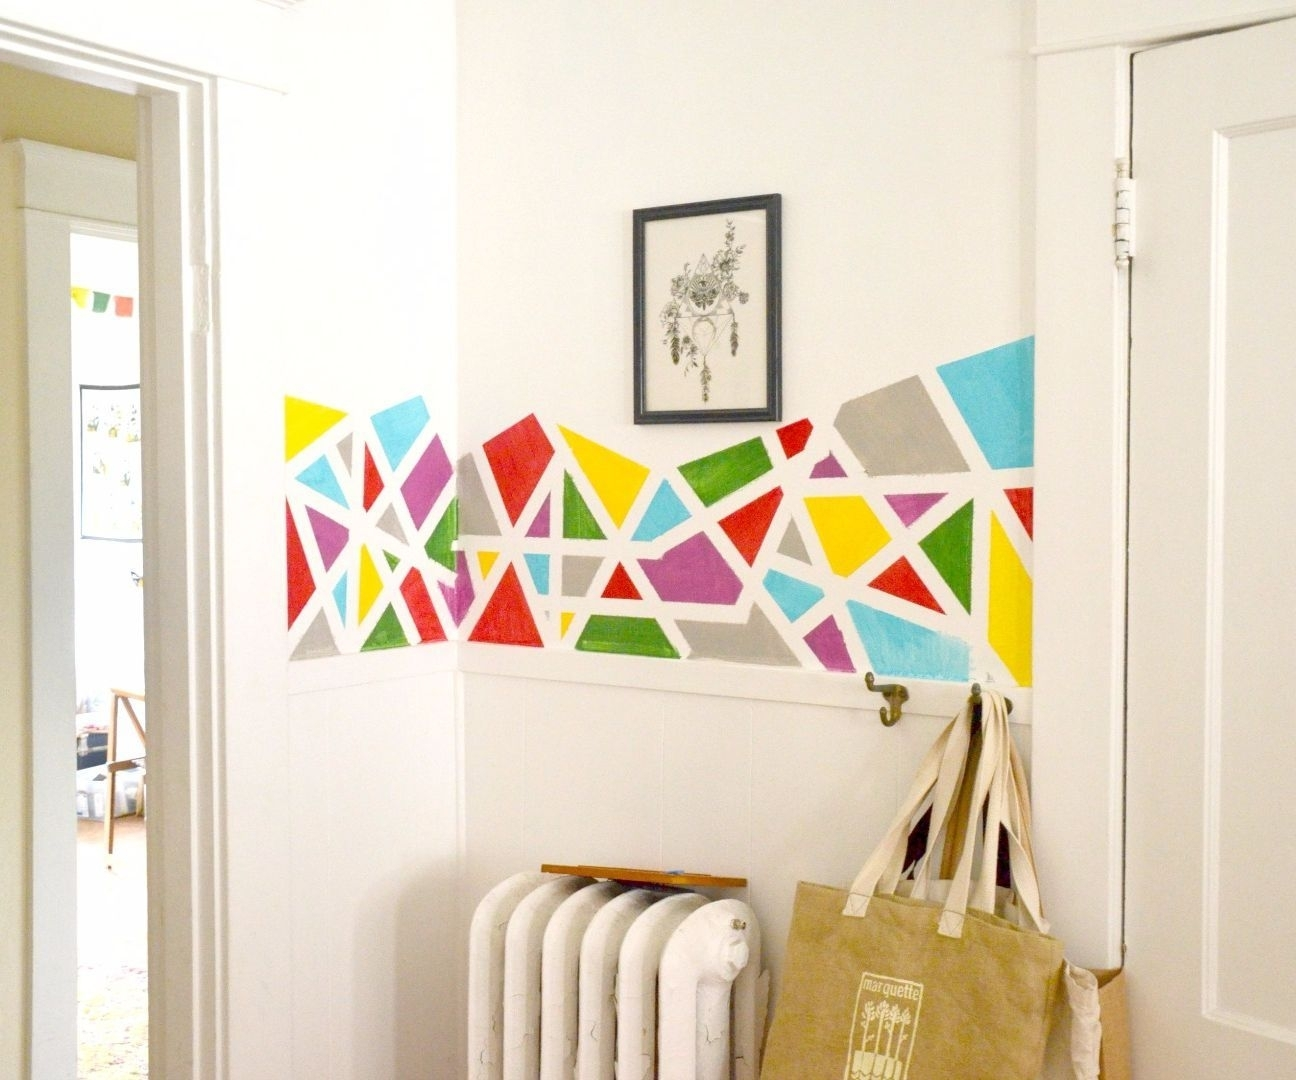 Popular Geometric Wall Art — Zachary Horne Homeszachary Horne Homes Within Recent Geometric Wall Art (View 17 of 20)